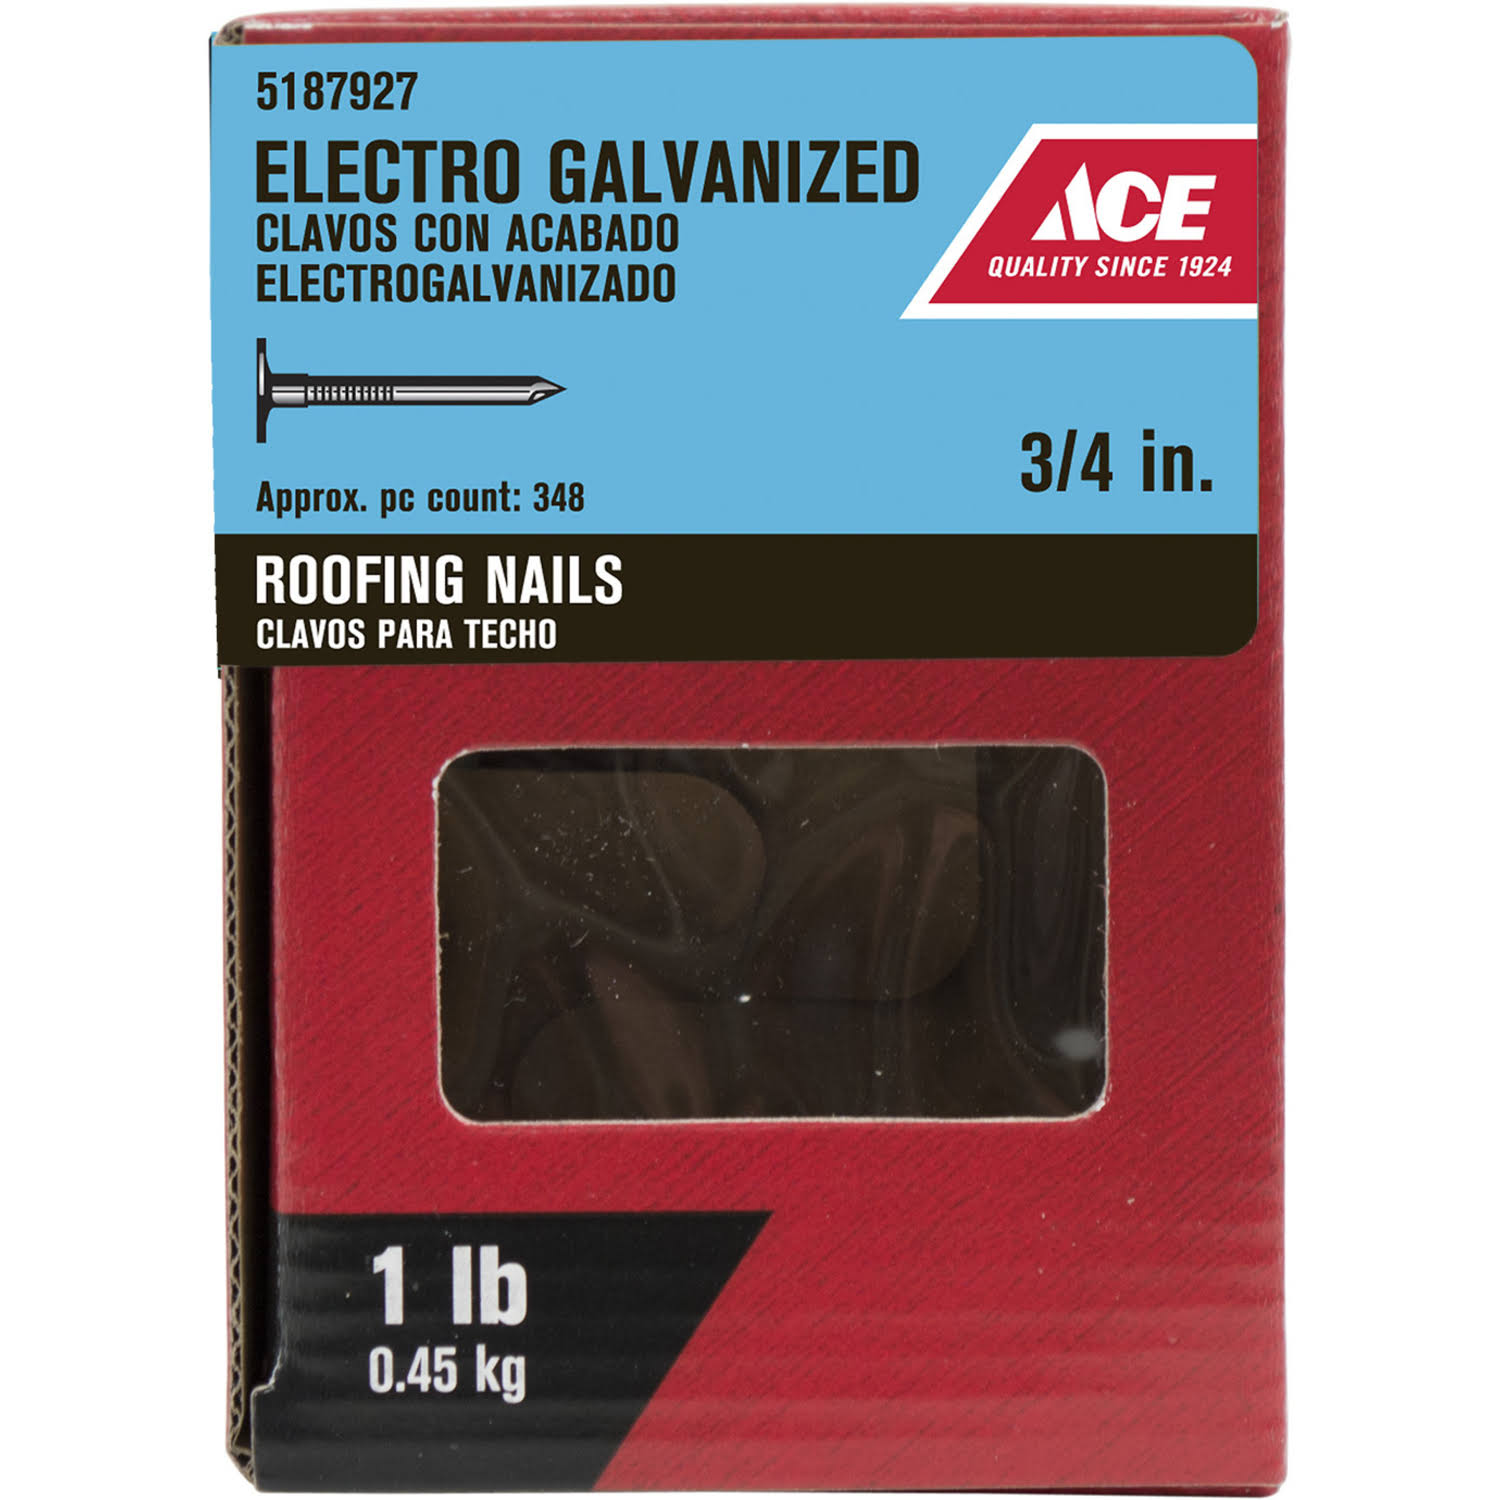 Ace Roofing Nails - Electro Galvanized